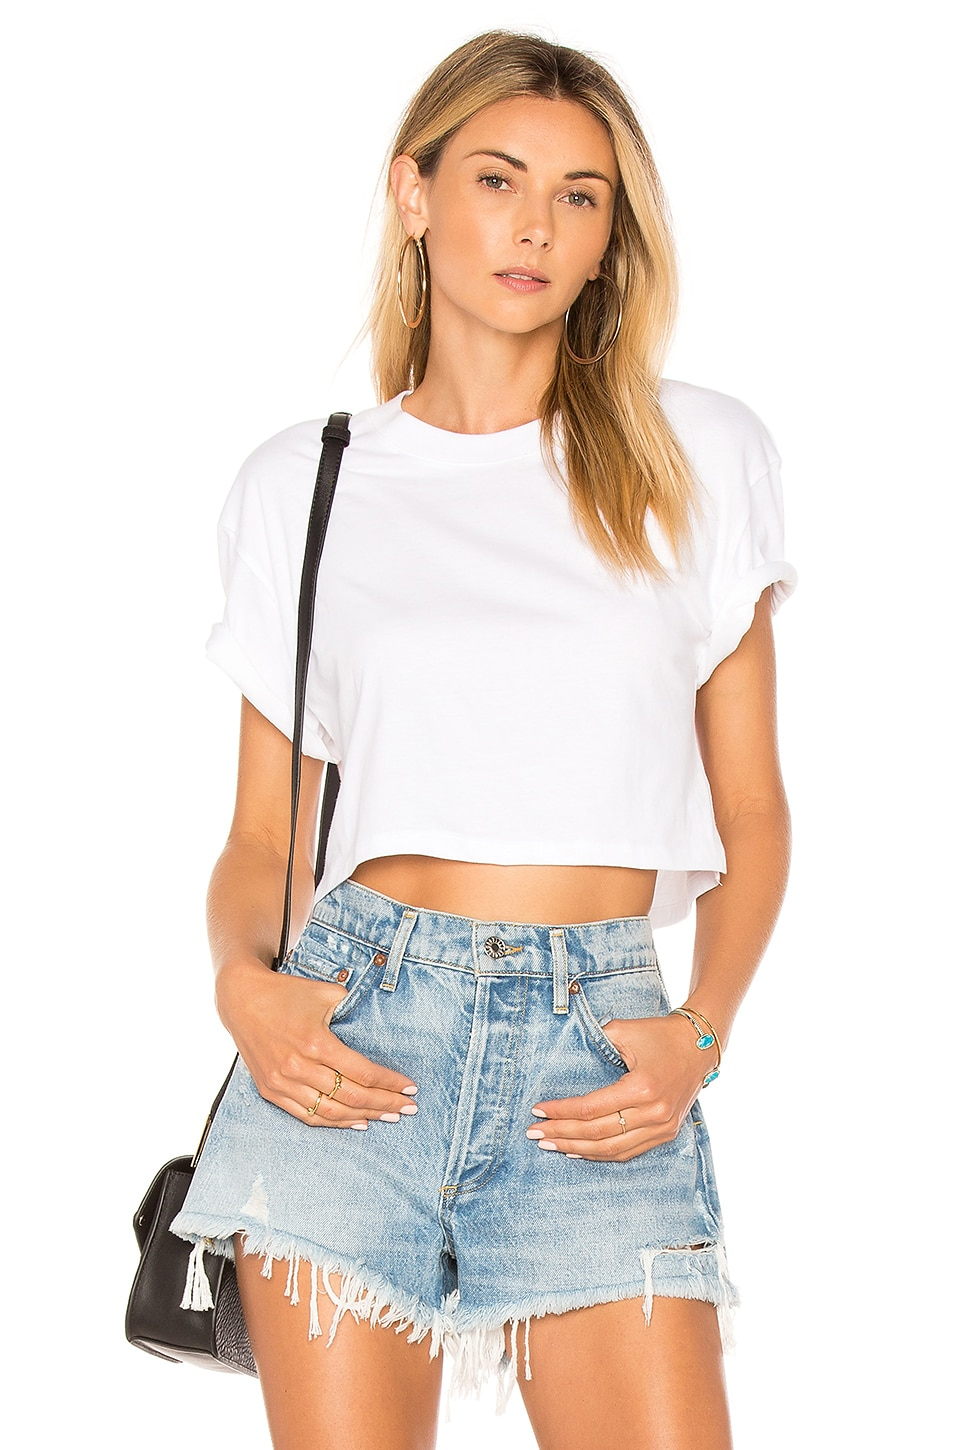 The Crop Tee             x karla                                                                                                       CA$ 67.22 26